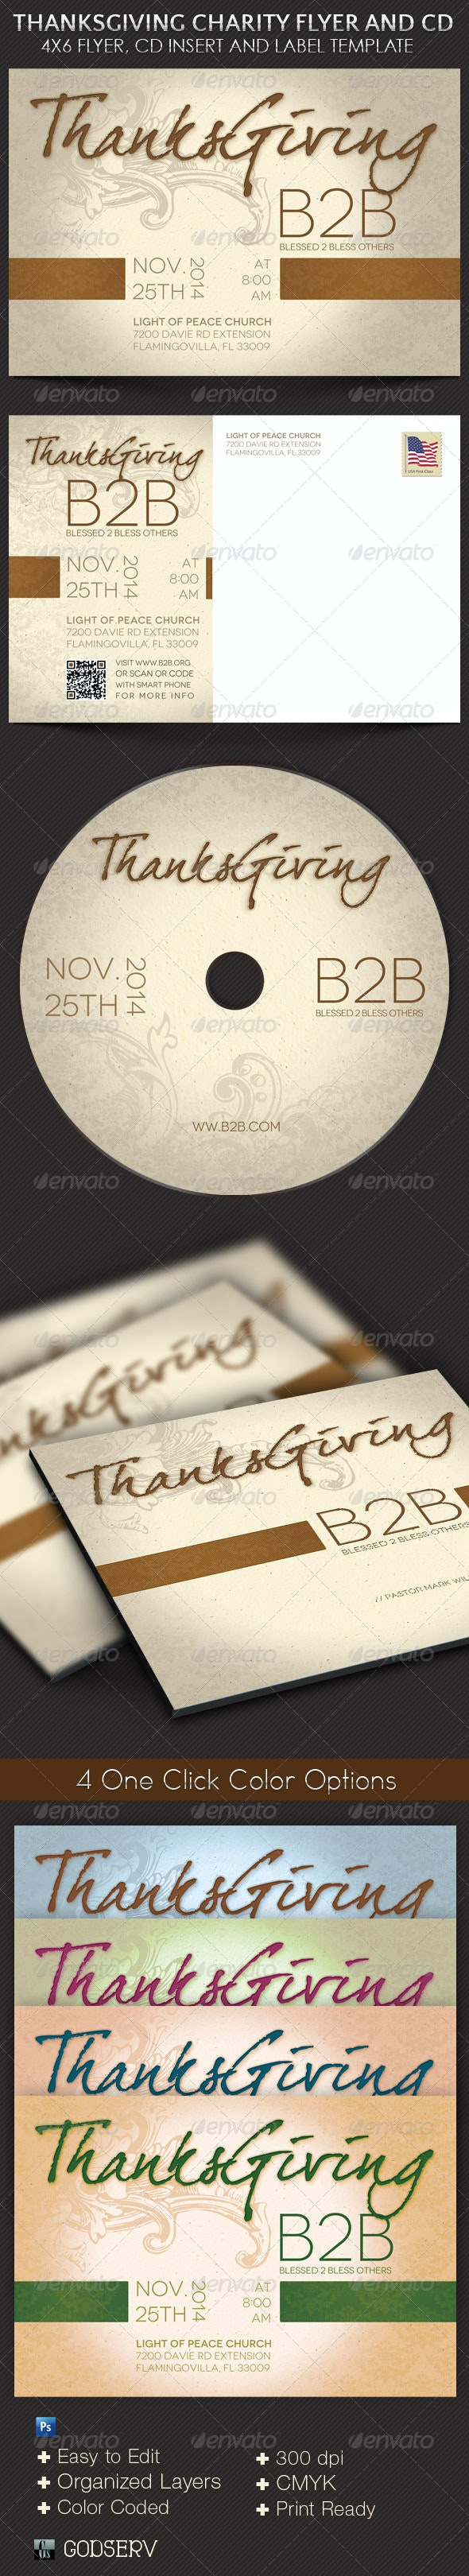 Thanksgiving Charity Flyer CD Template - Church Flyers